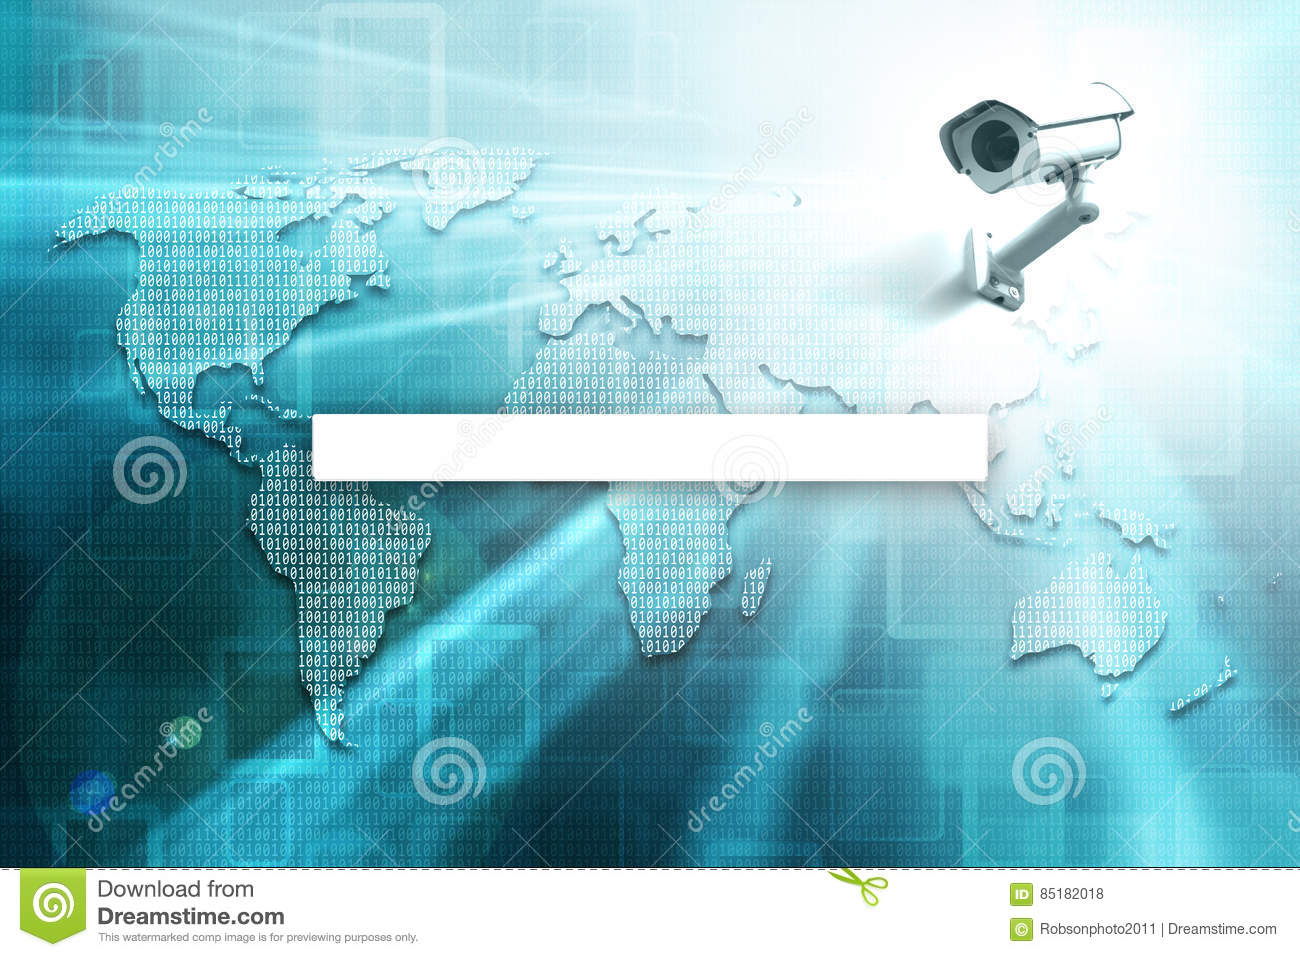 Search World Map.Digital World Map With Search Bar And Cctv Stock Illustration